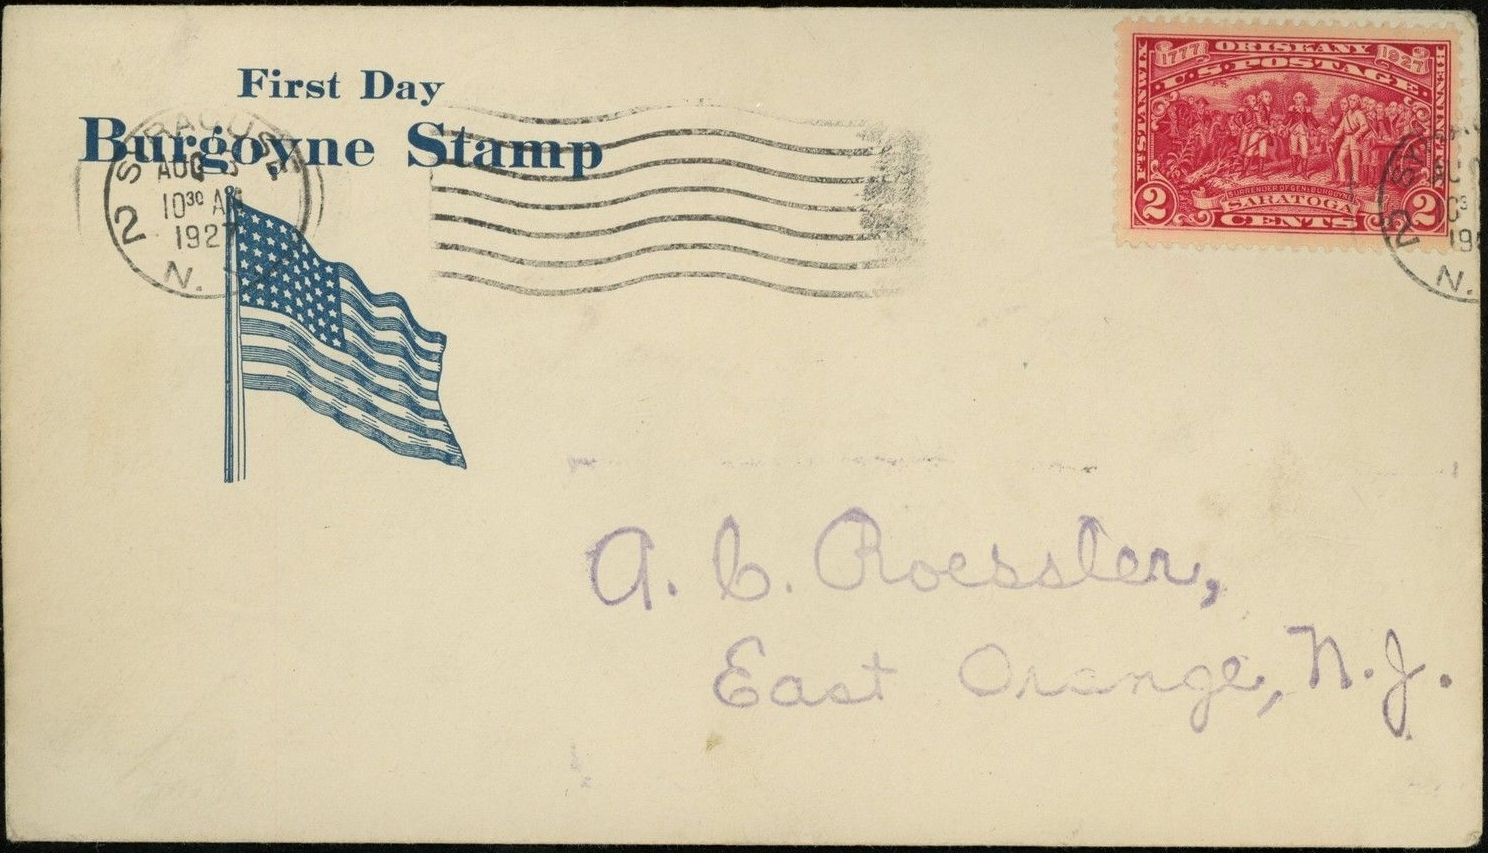 United States - Scott #644 (1927) first day cover postmarked at Syracuse, New York, August 3, 1927. Roessler cachet.